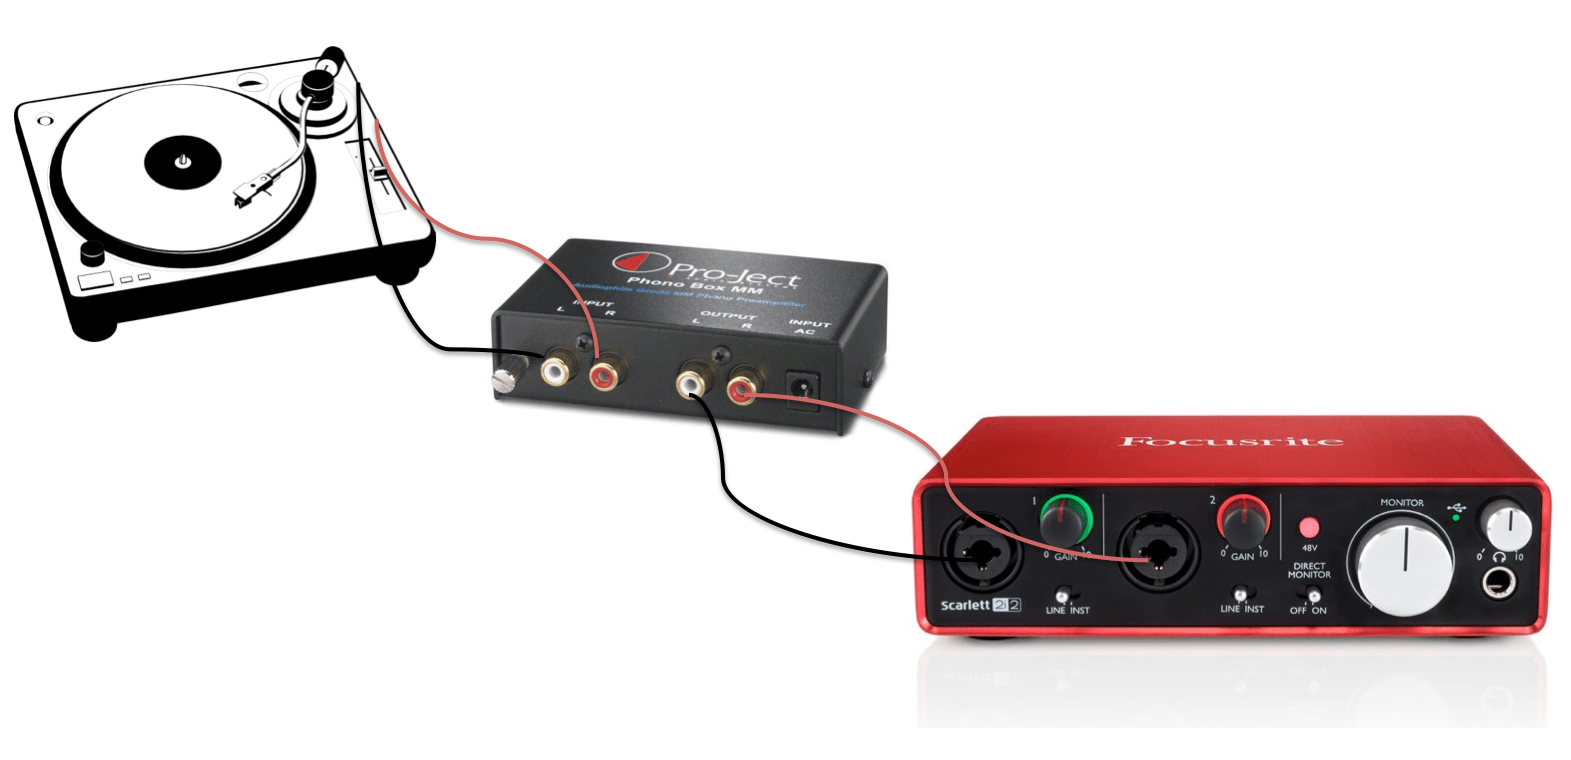 hight resolution of  connect the outputs of the phono pre amp to a pair of line inputs of the focusrite interface a diagram showing an example of this can be found below